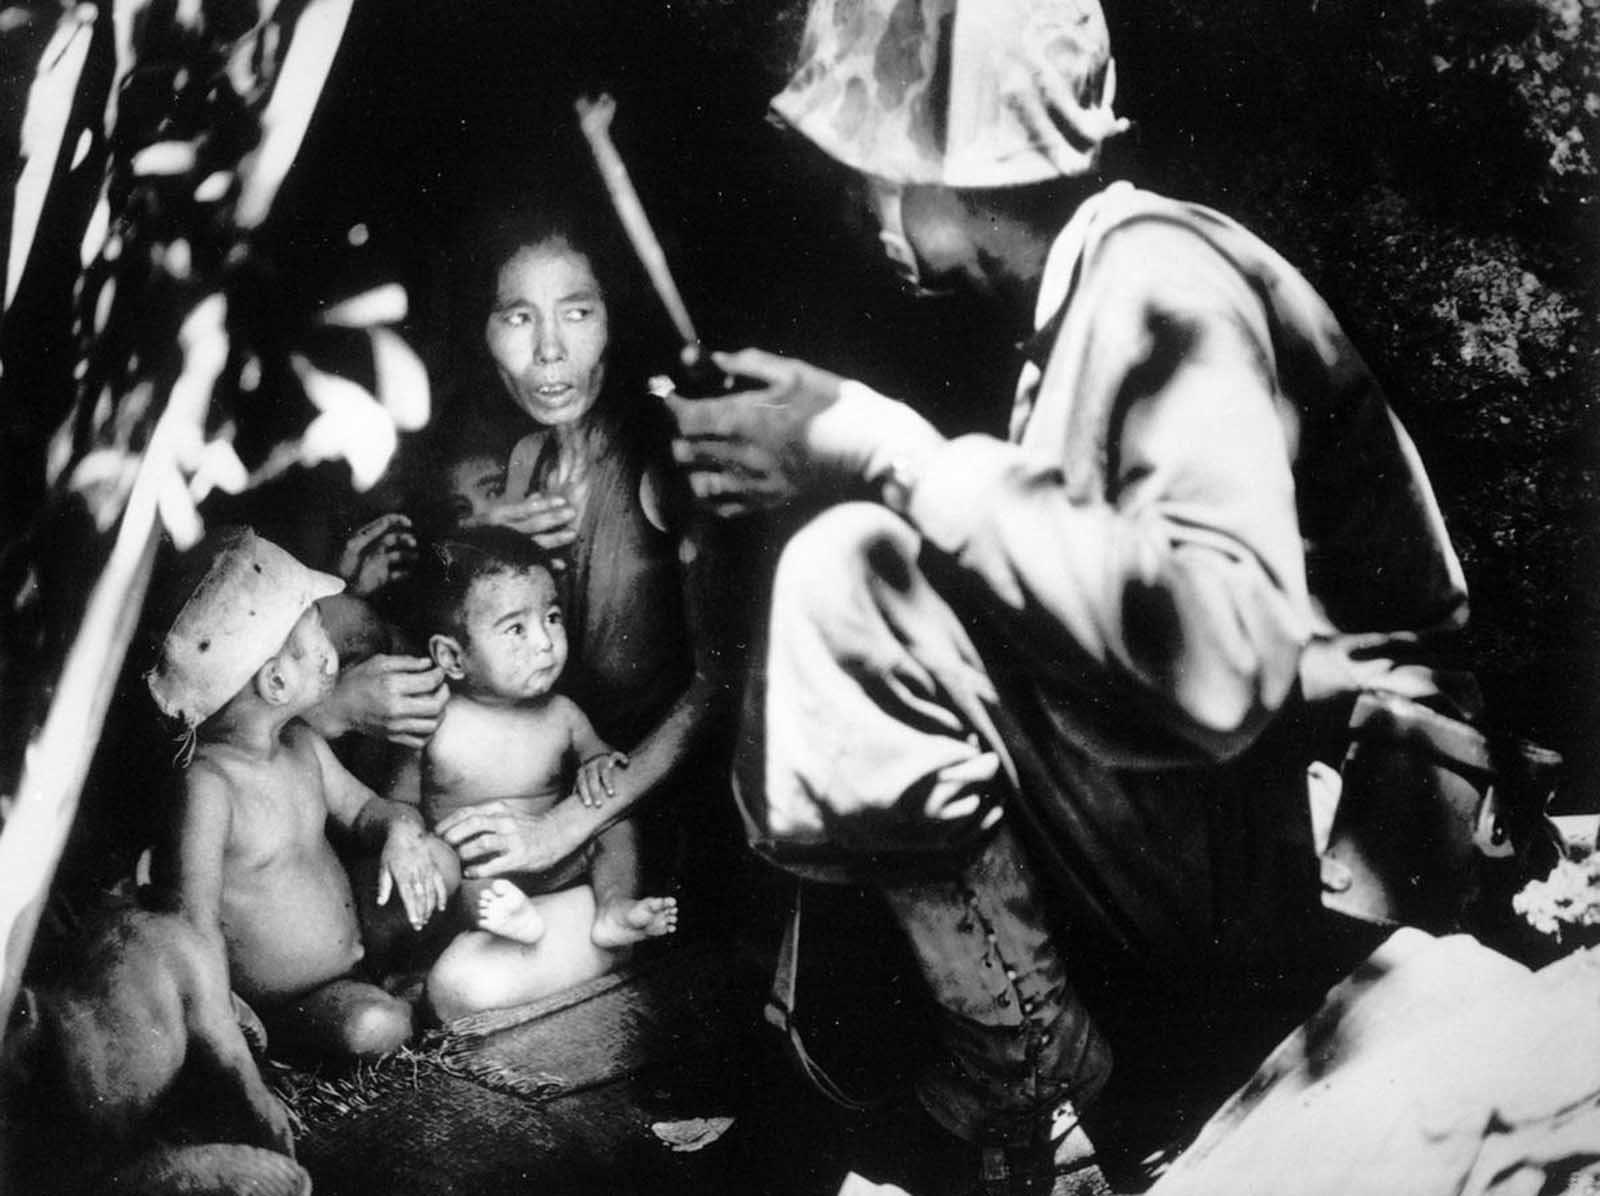 A member of a U.S. Marine patrol discovers this Japanese family hiding in a hillside cave, June 21, 1944, on Saipan. The mother, four children and a dog took shelter in the cave from the fierce fighting in the area during the U.S. invasion of the Mariana Islands.